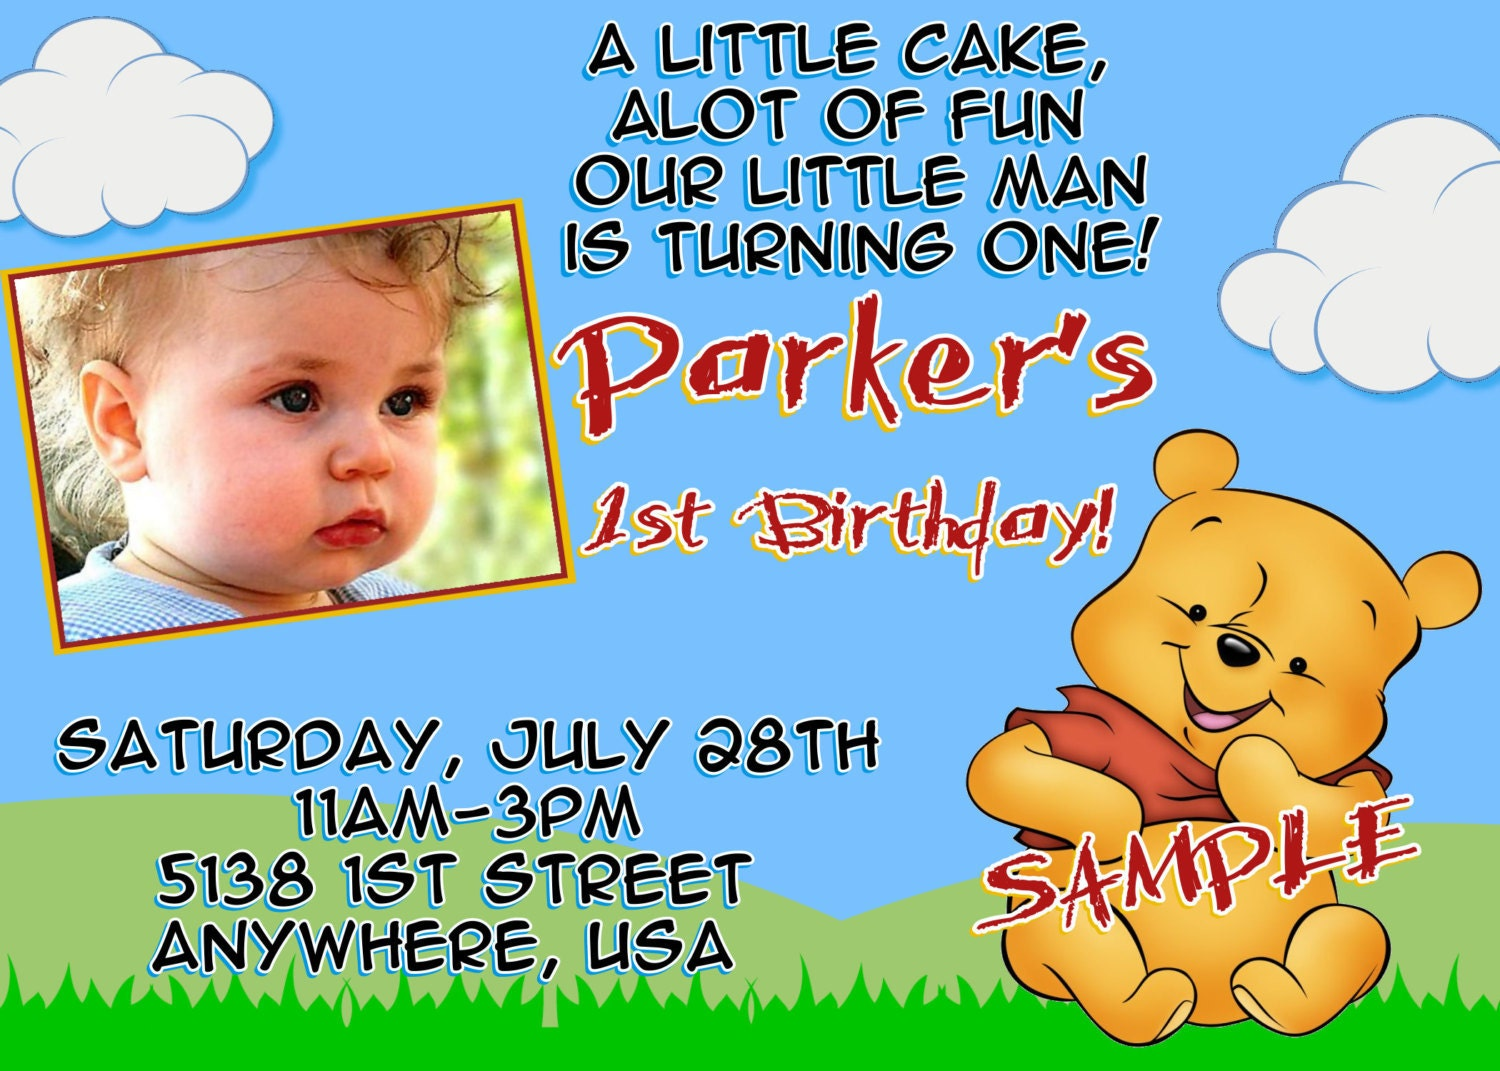 Winnie The Pooh Birthday Invitations Templates Images - Birthday invitation templates winnie pooh